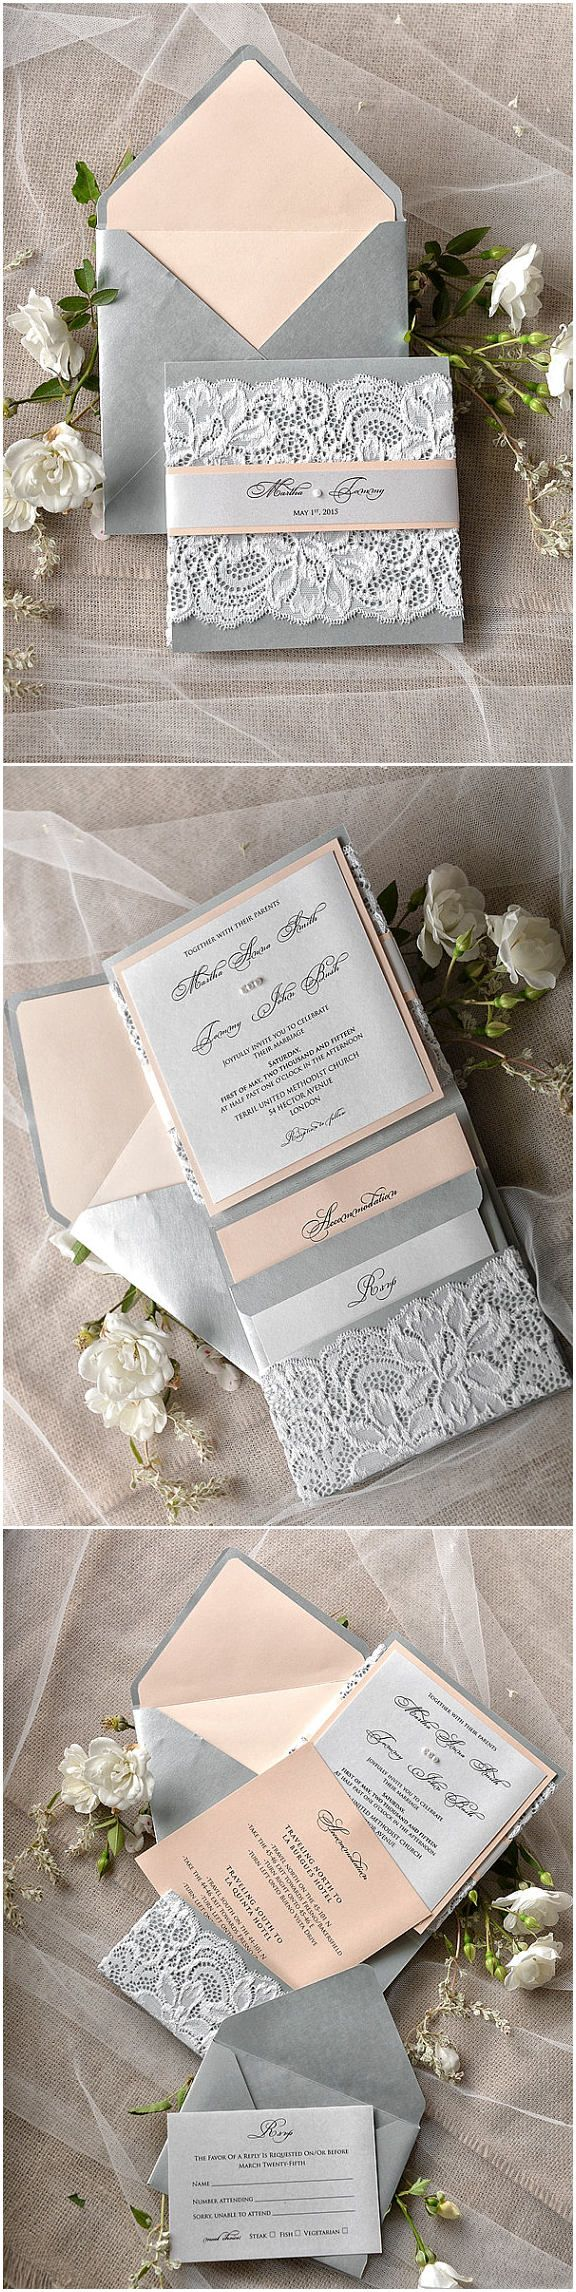 free wedding invitation templates country theme%0A Top    Rustic Wedding Invitations to WOW Your Guests